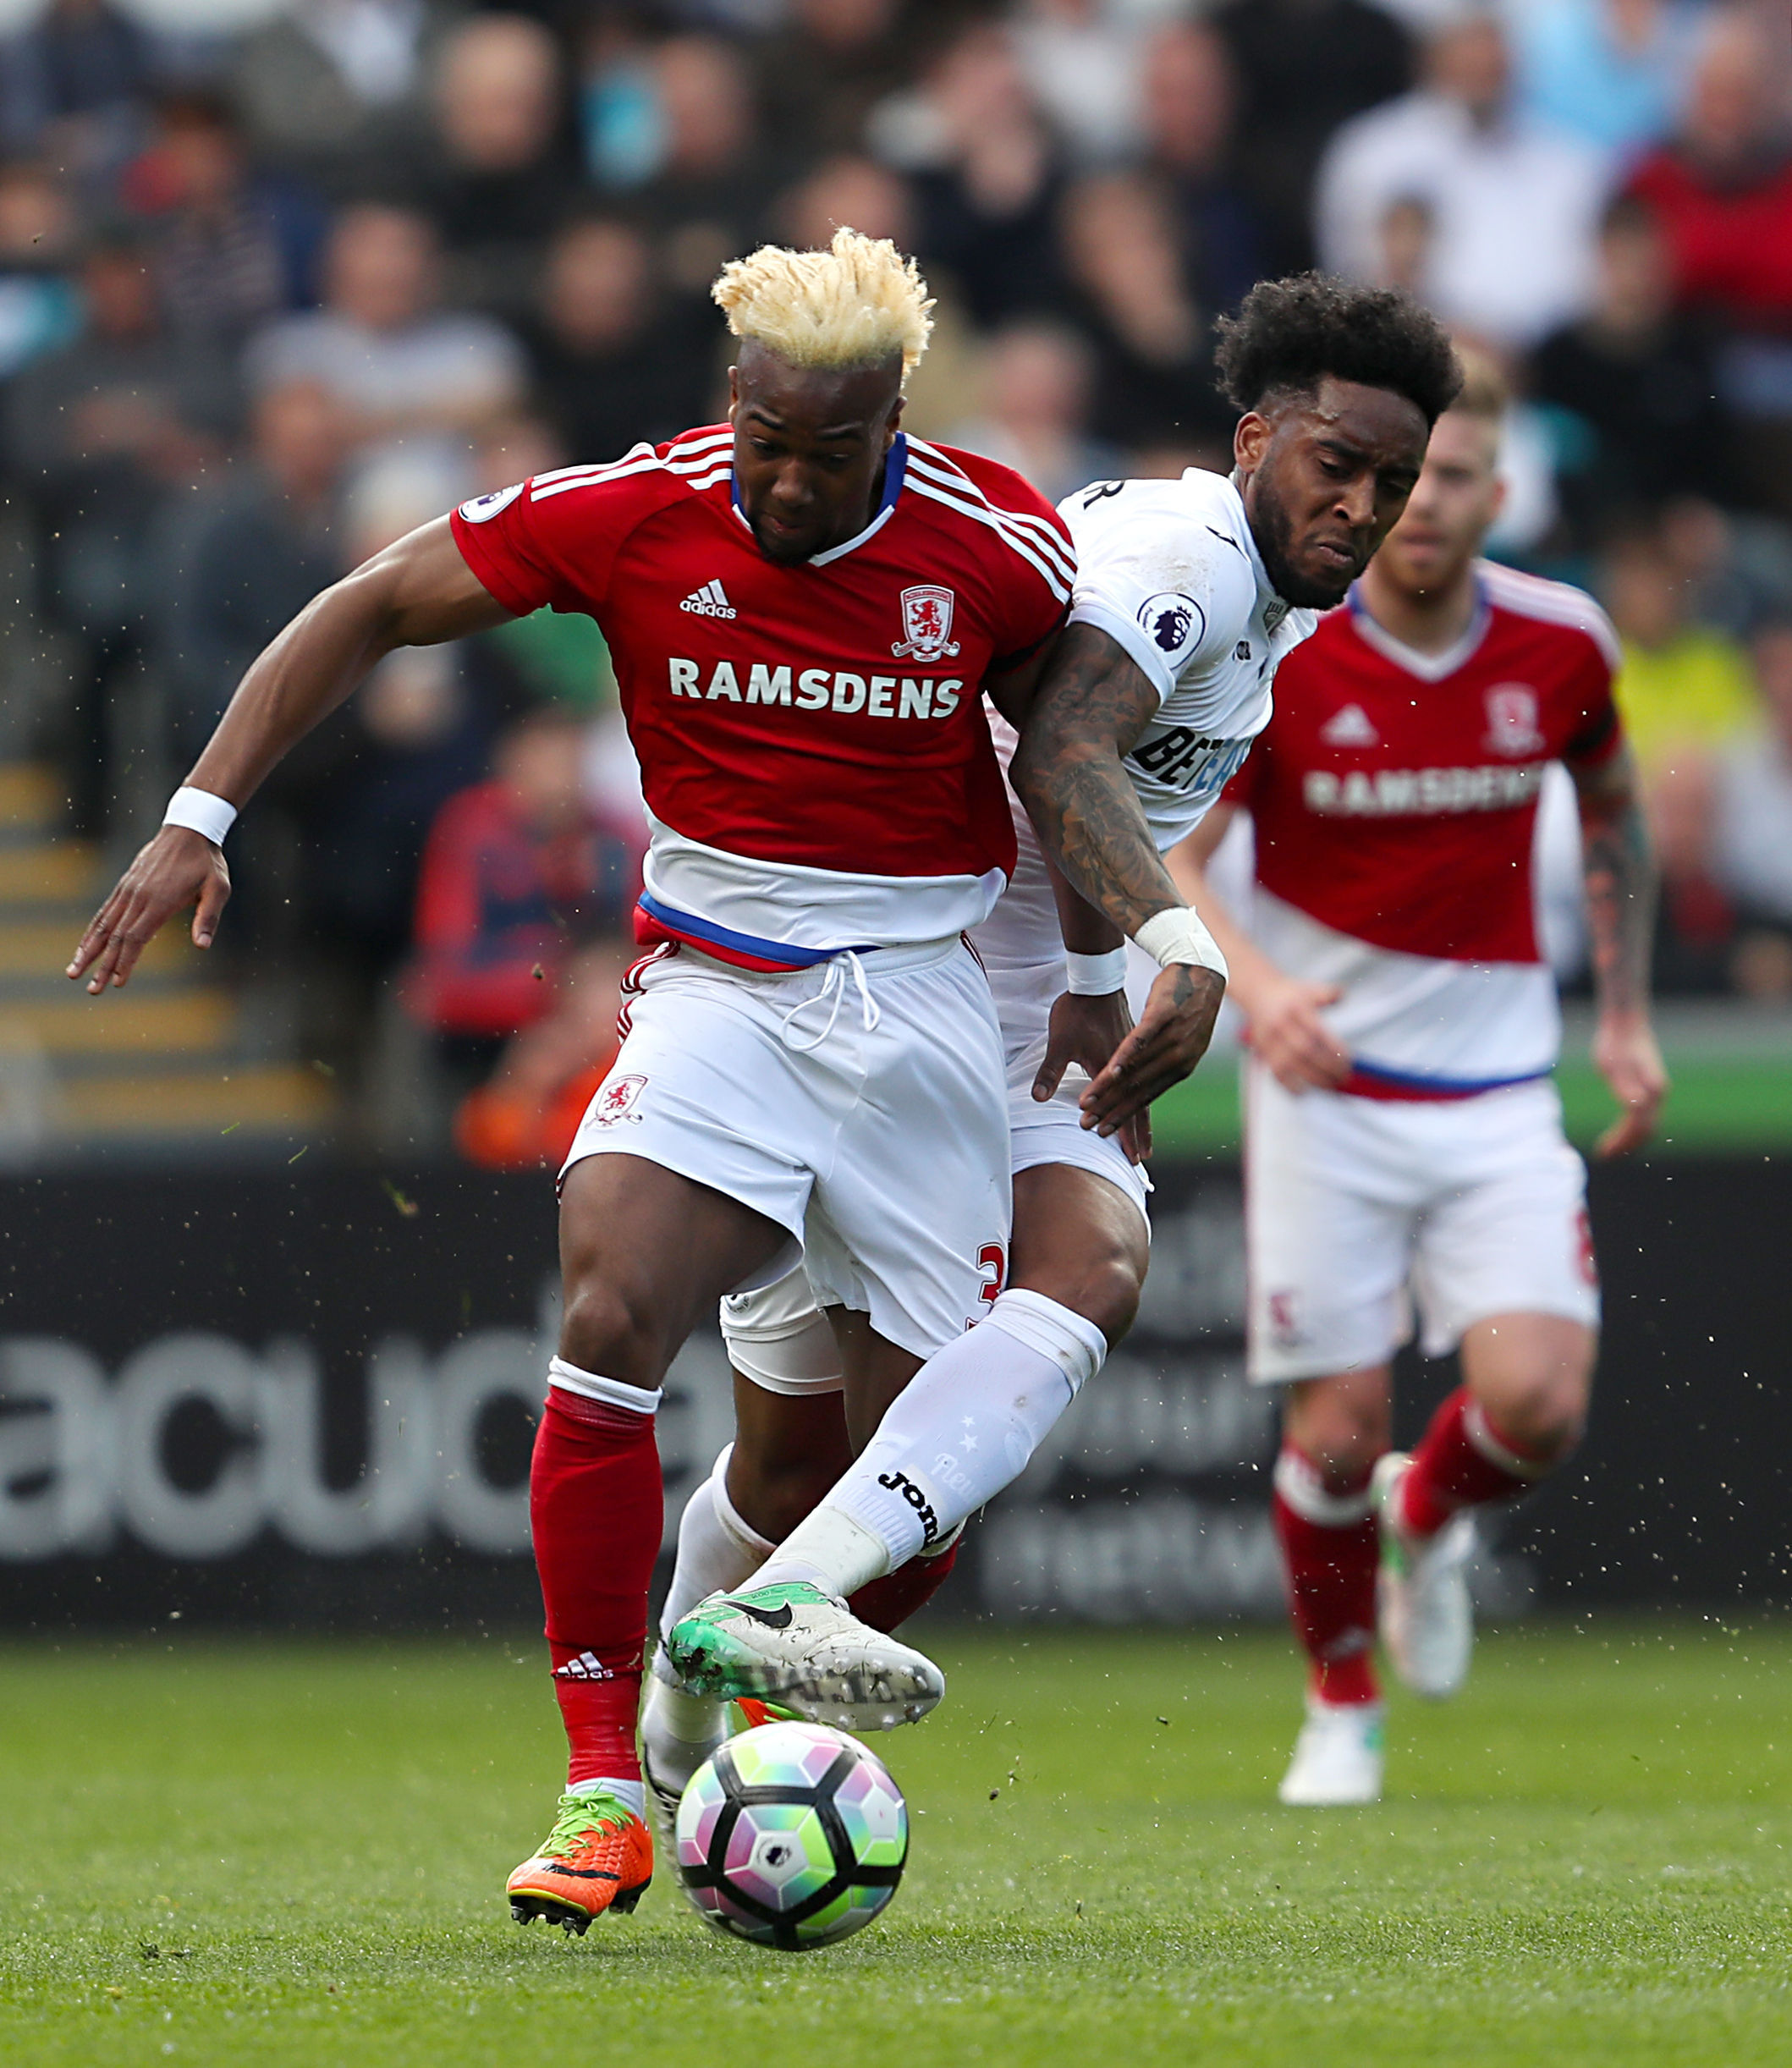 Chelsea plot surprise summer move for Middlesbrough winger